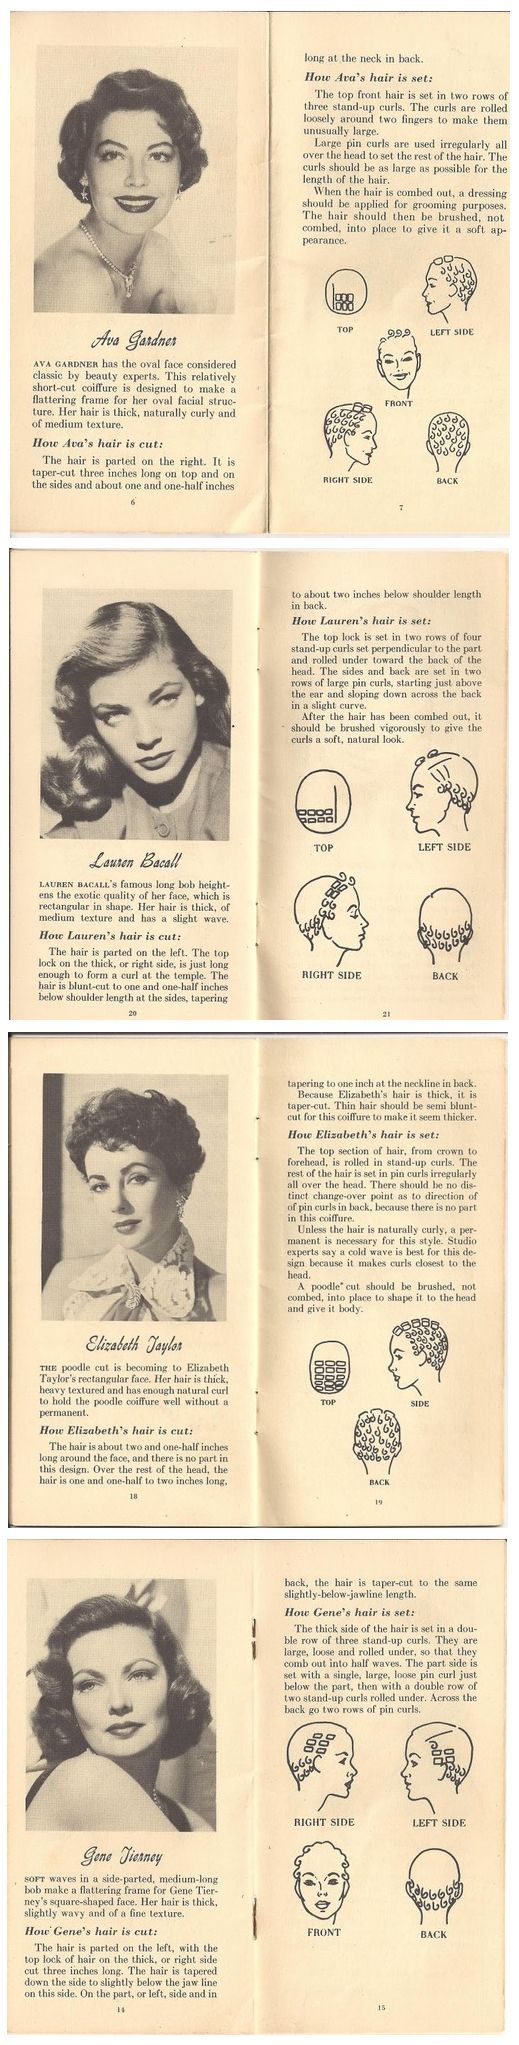 hair style glam movie star looks vintage 40s 50s book print ad pin curls I'd love more of these little tutorials...especially cut advise.